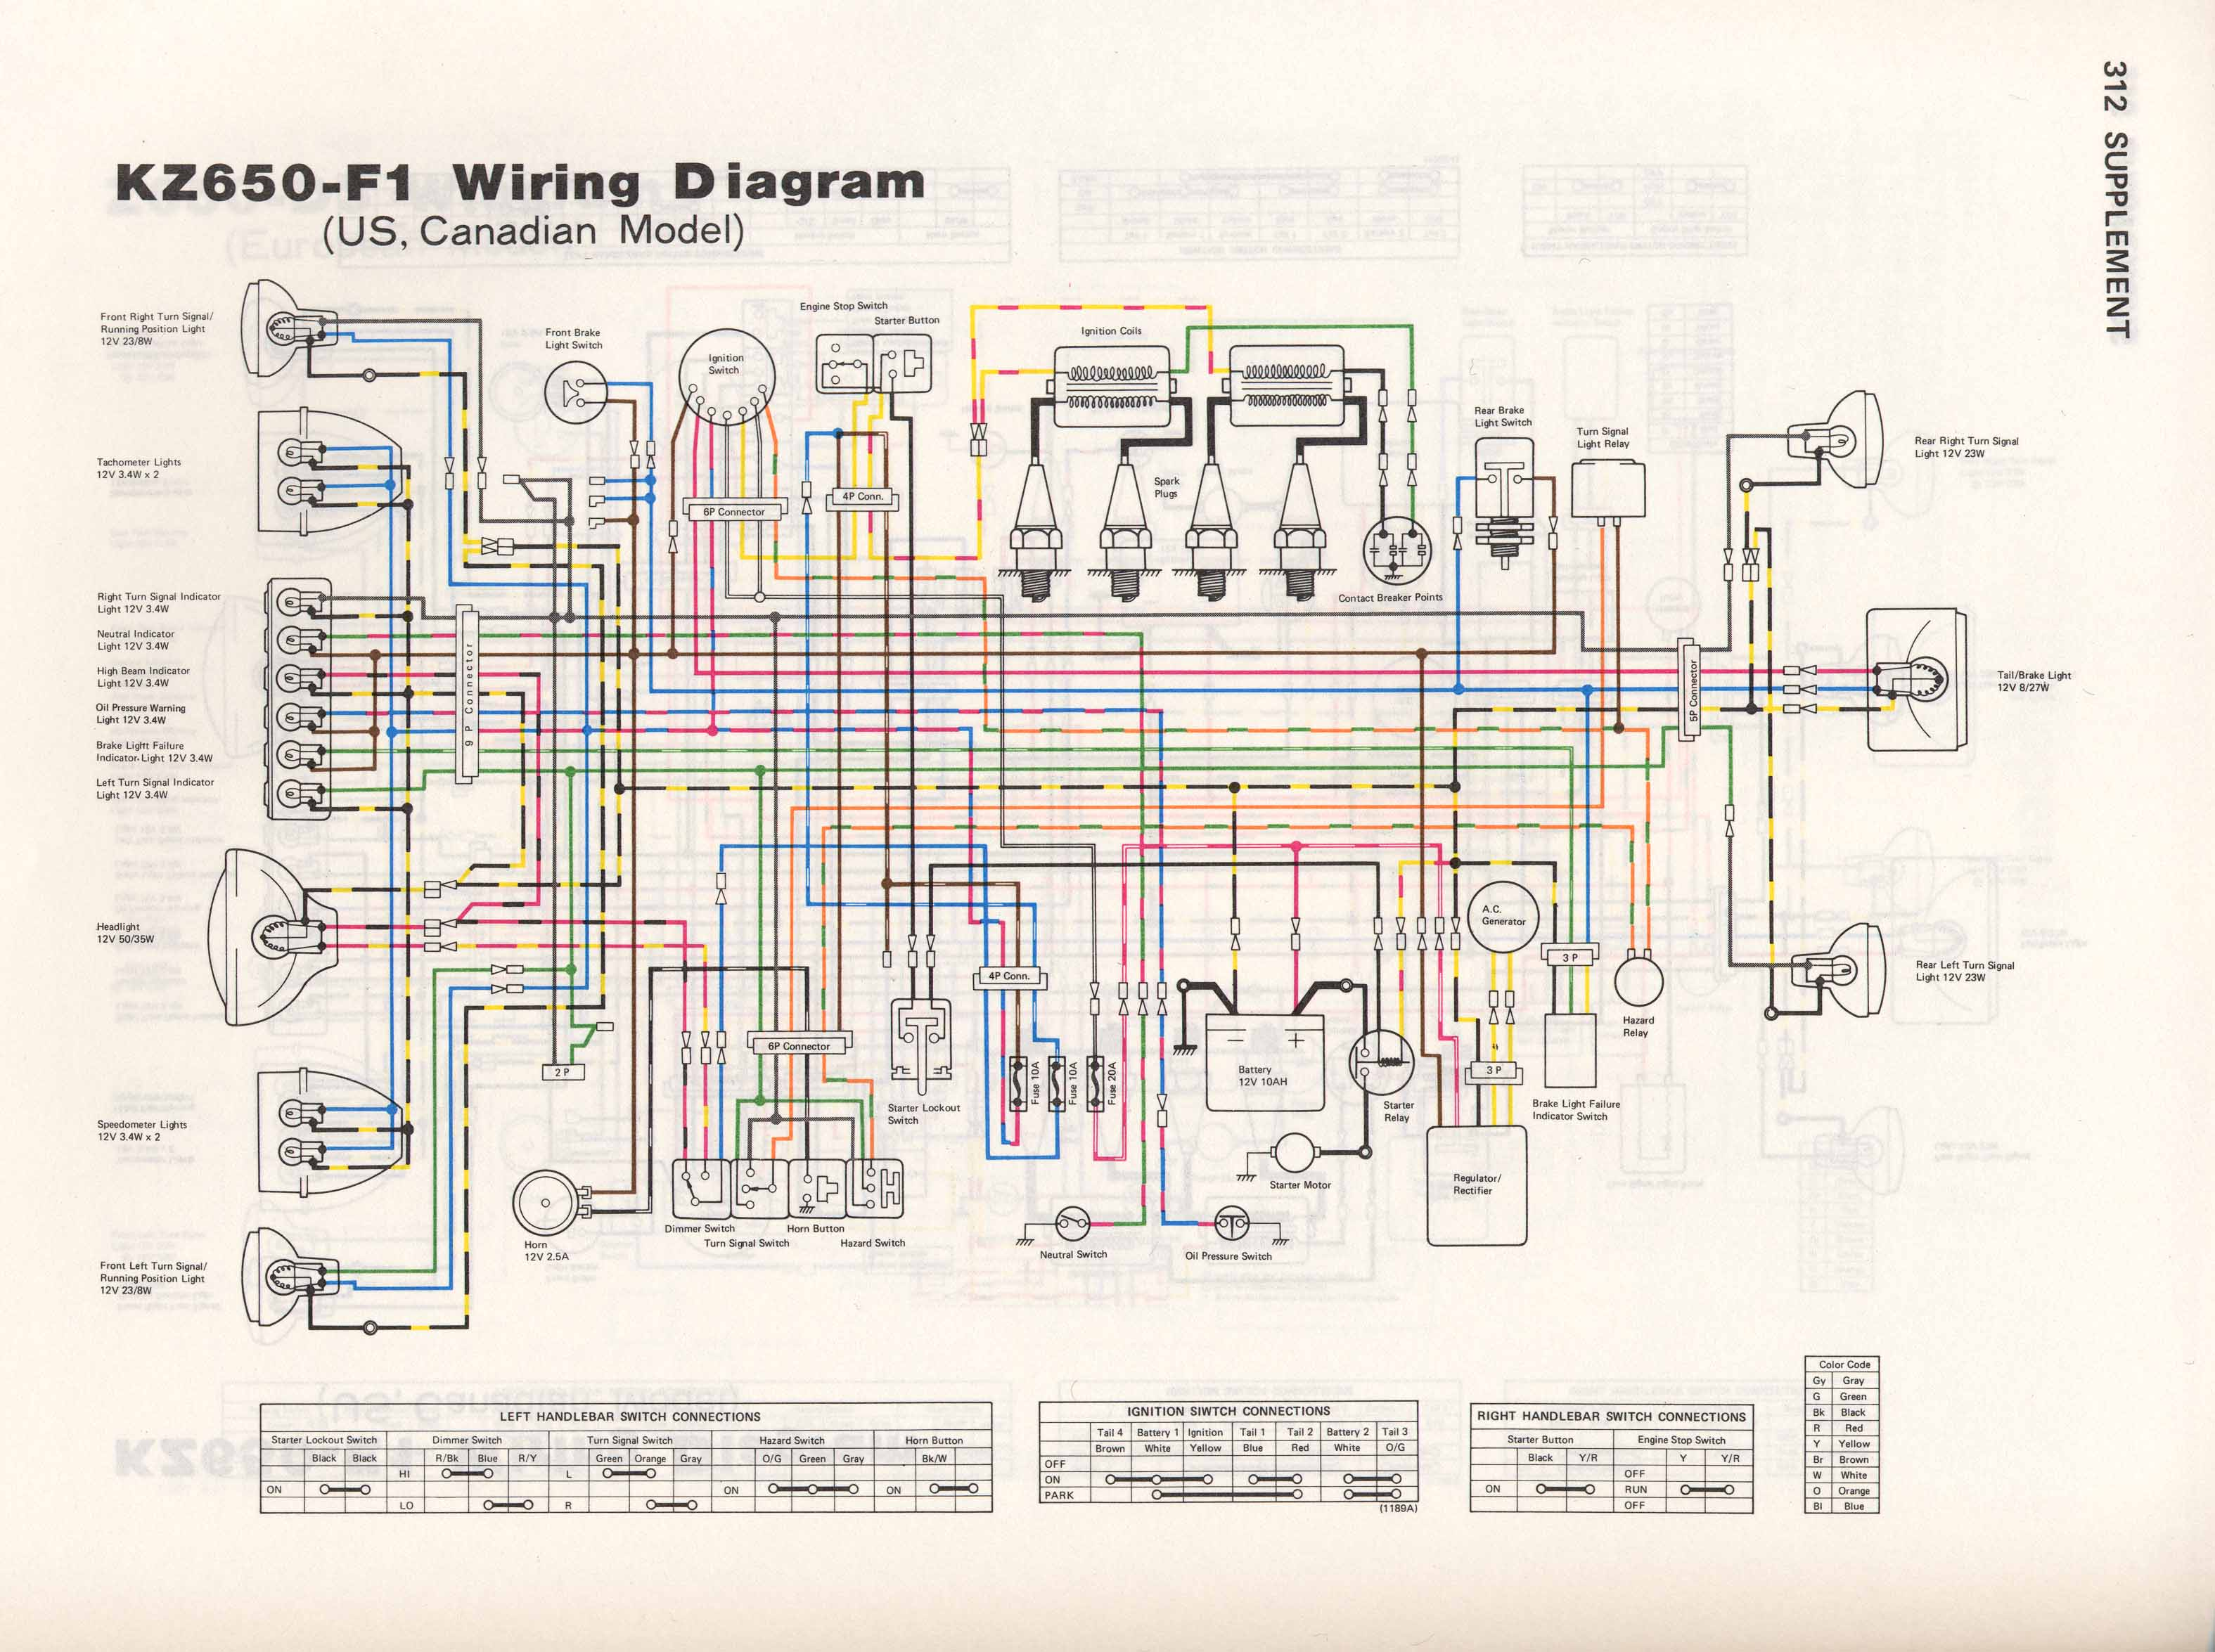 kawasaki z650 wiring diagram wiring diagram name Kawasaki.com Diagrams kz650 info wiring diagrams kawasaki motorcycle wiring diagrams kawasaki z650 wiring diagram